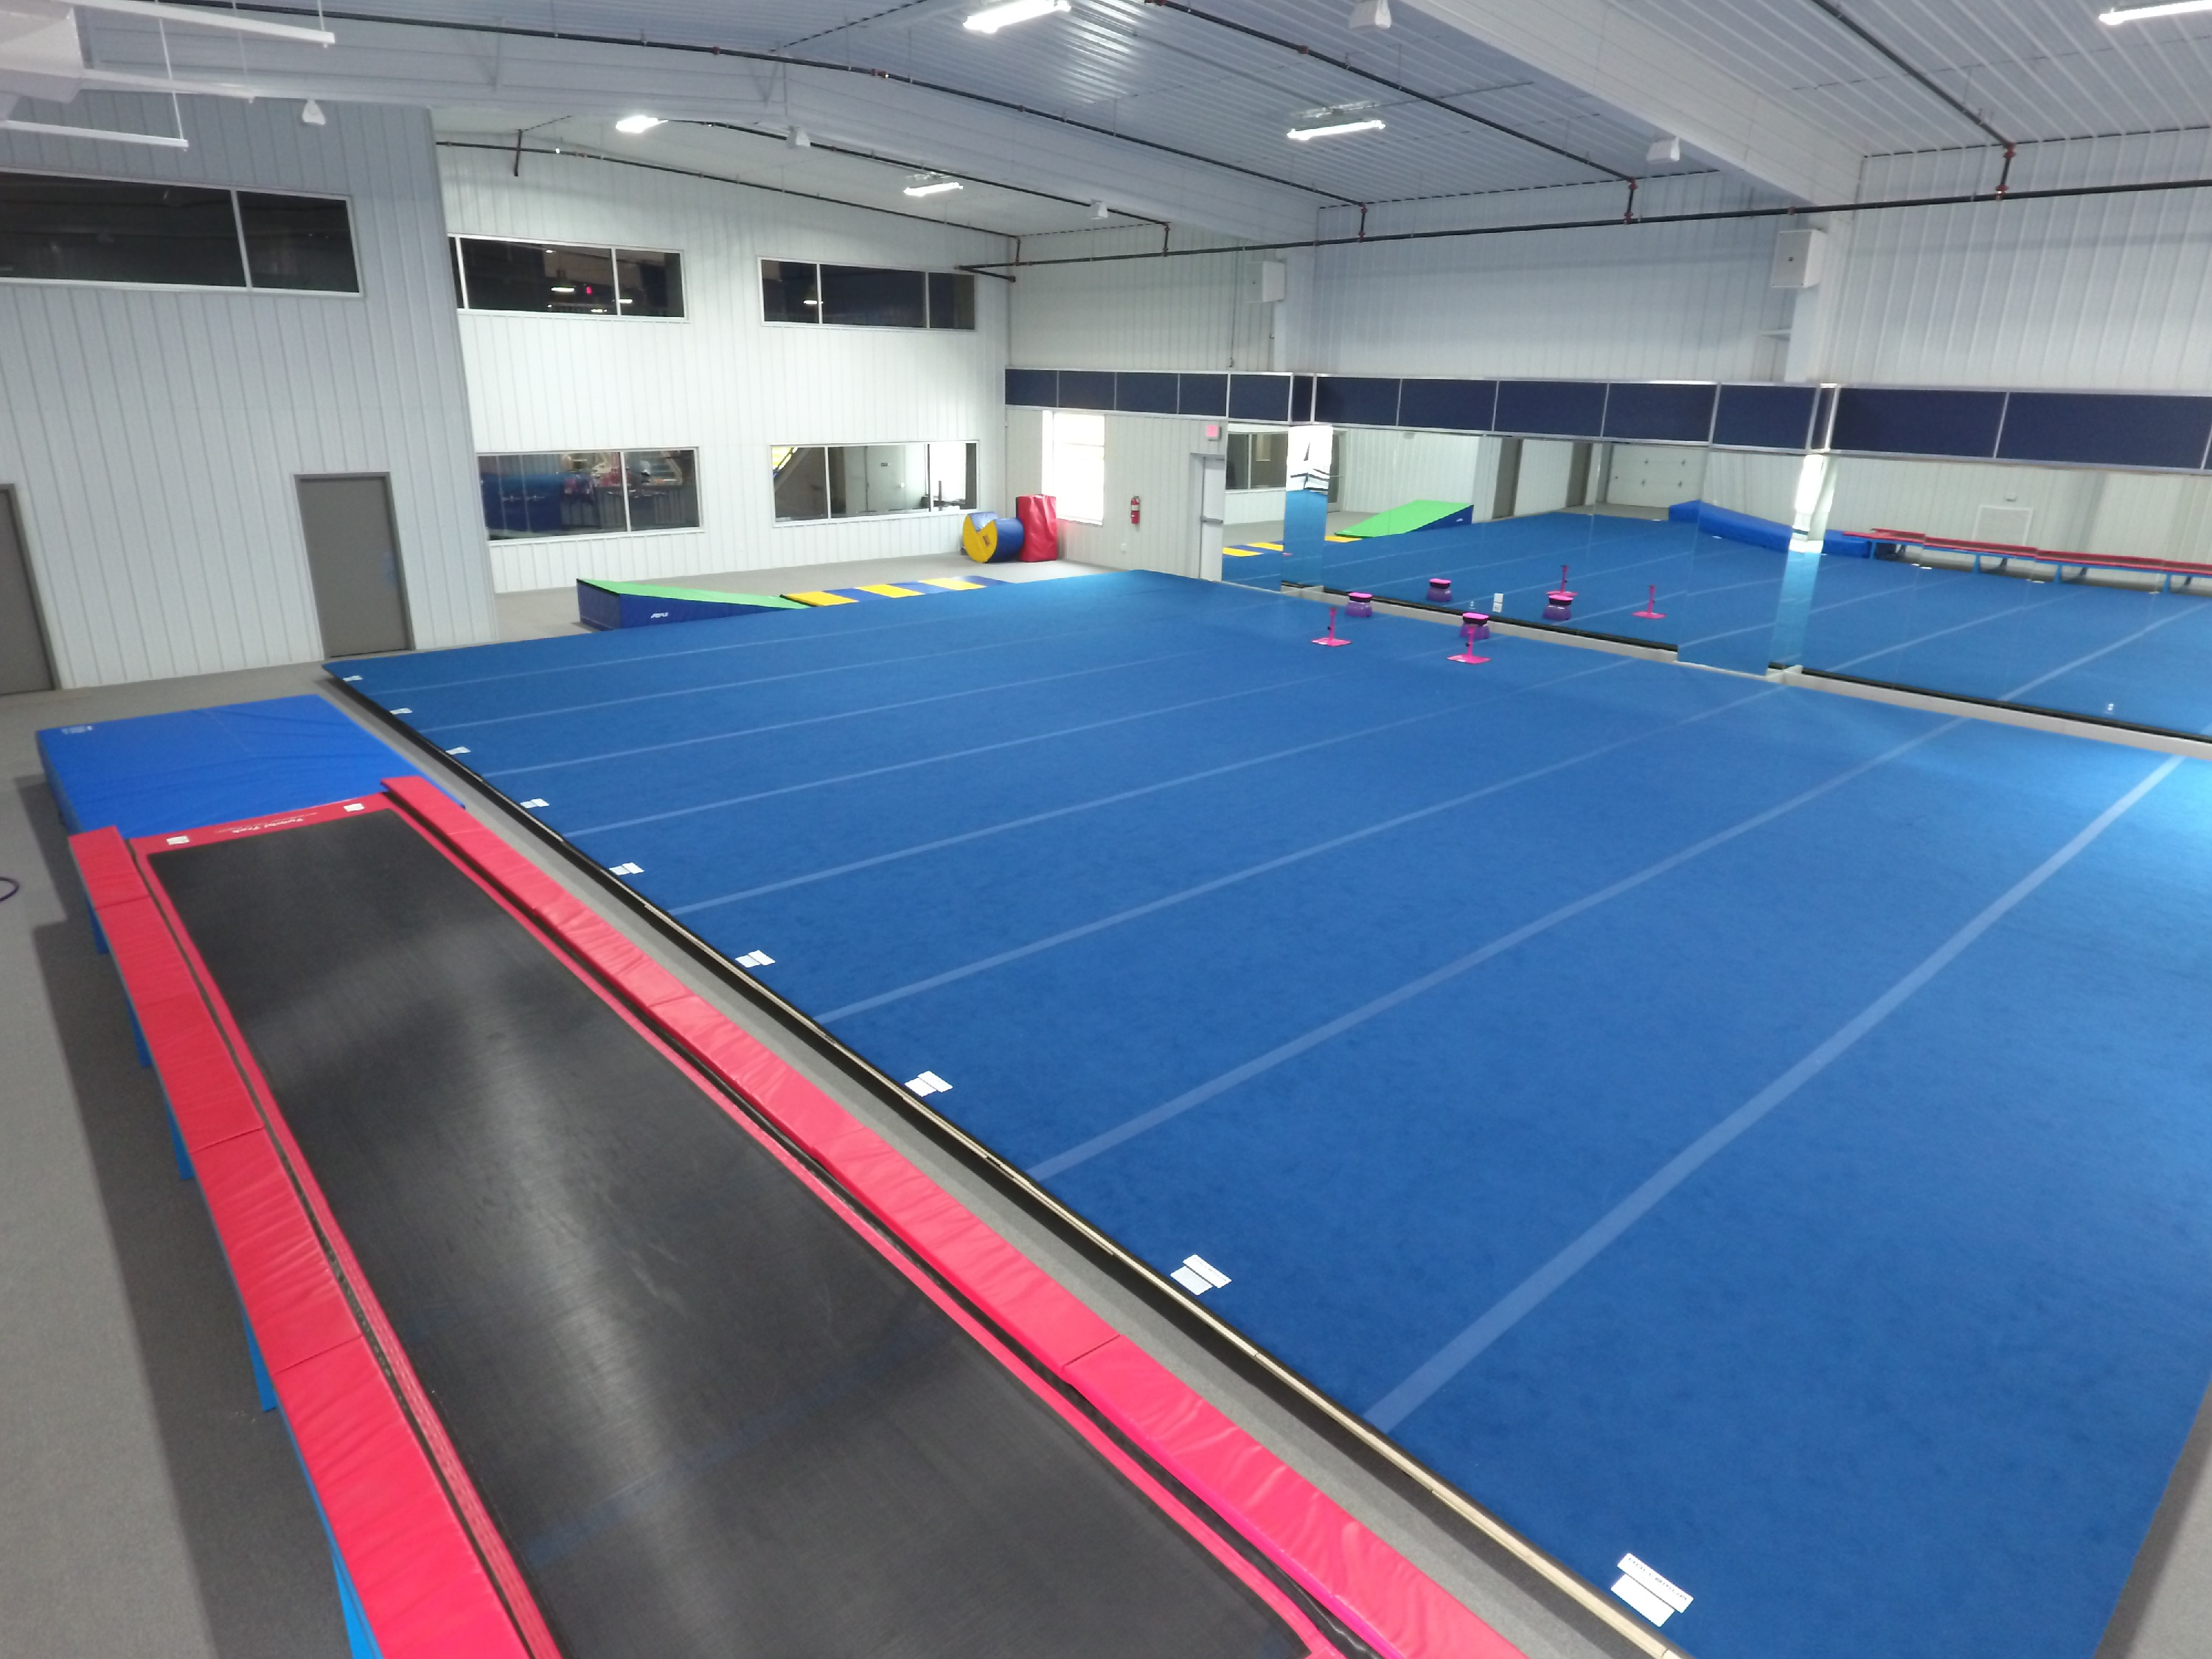 image of gymnastics gym with trampoline and large mat